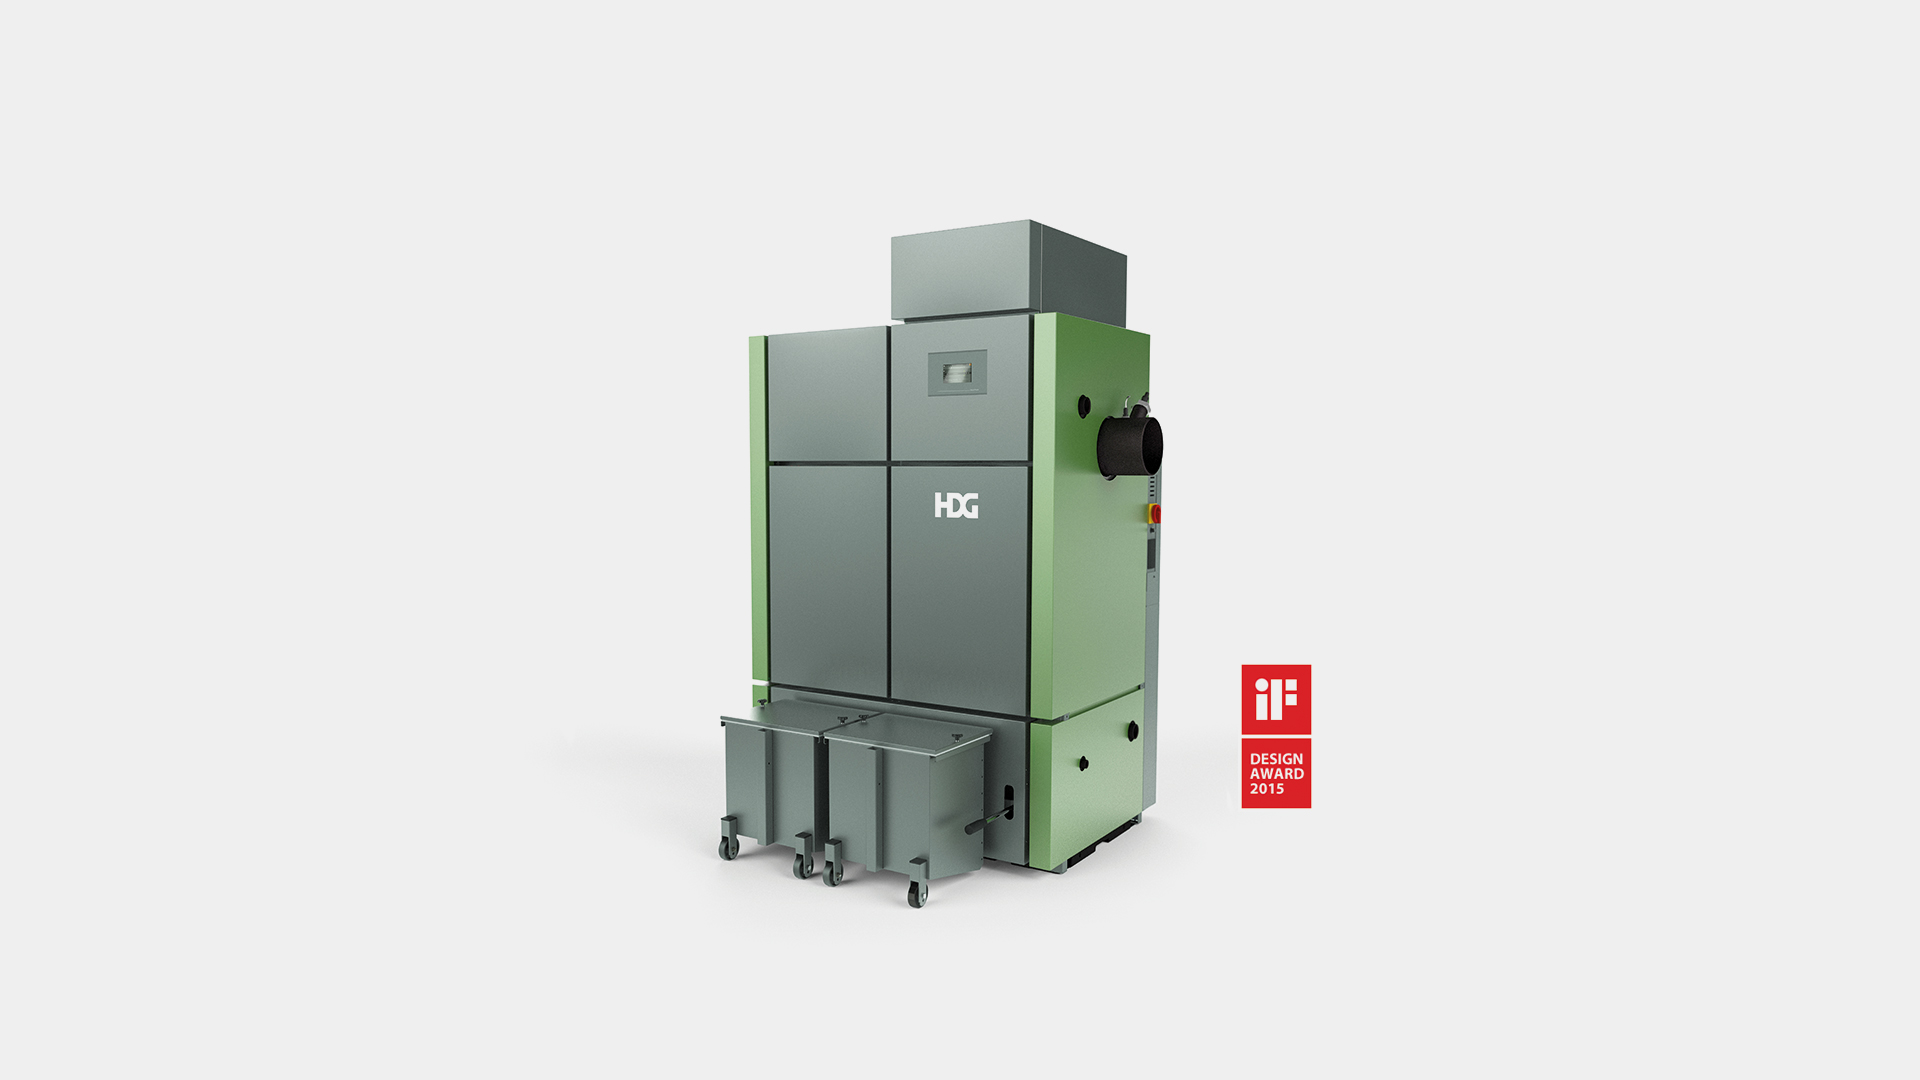 HDG compact series